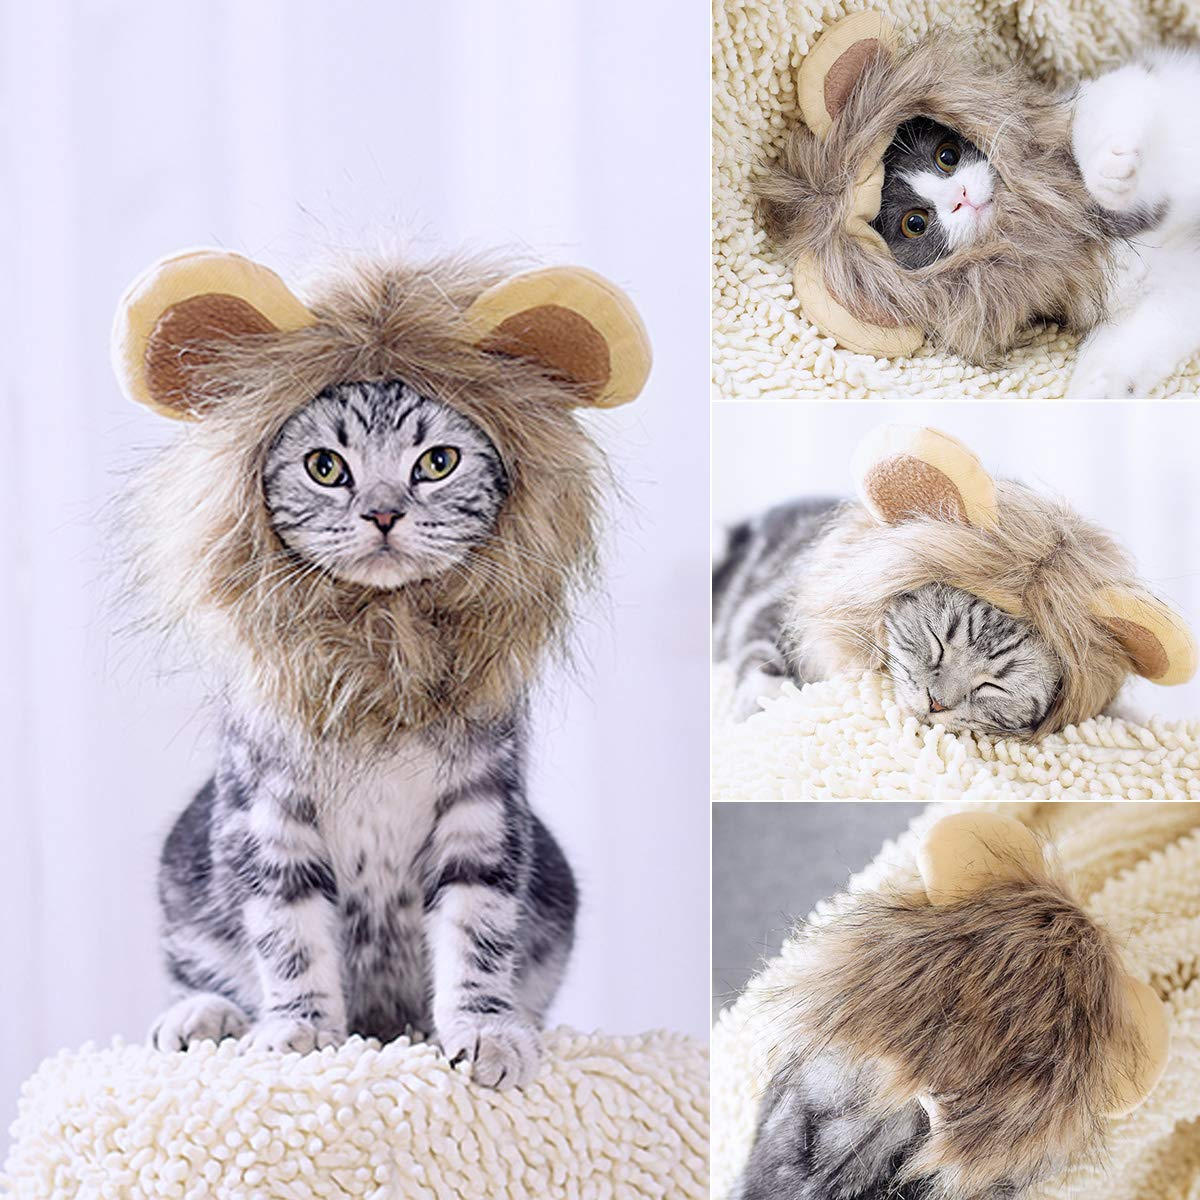 Petleso Lion Mane Costume - Pet Cat Lion Mane with Ears Adjustable Washable Pet Halloween Costume for Doggy Puppy Cats